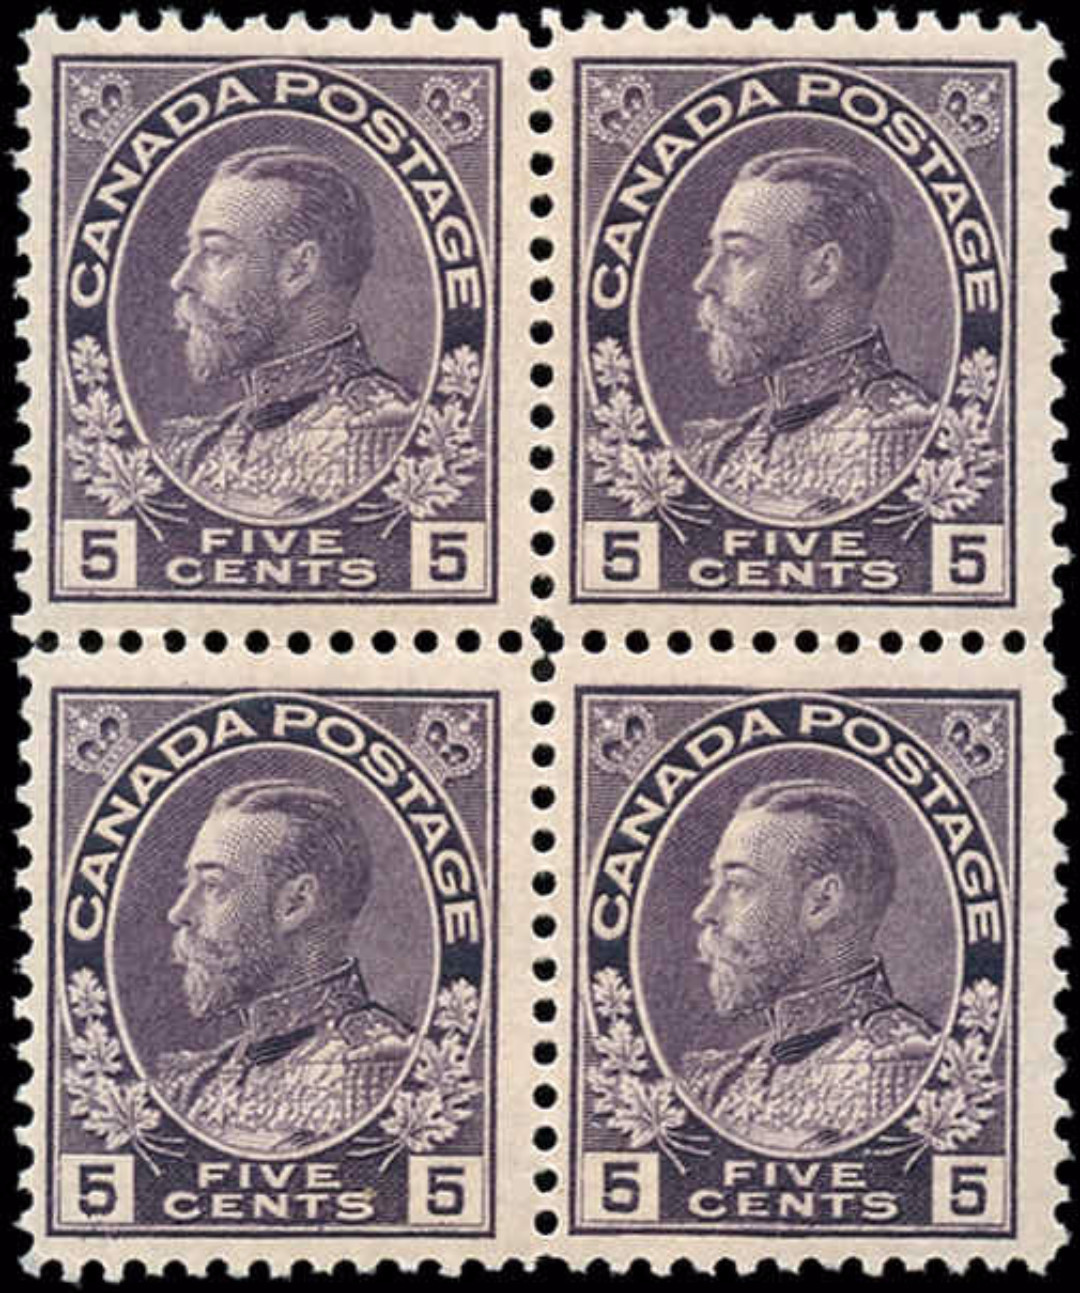 Canada Stamp, Scott #112 Block, F-VF, MNH